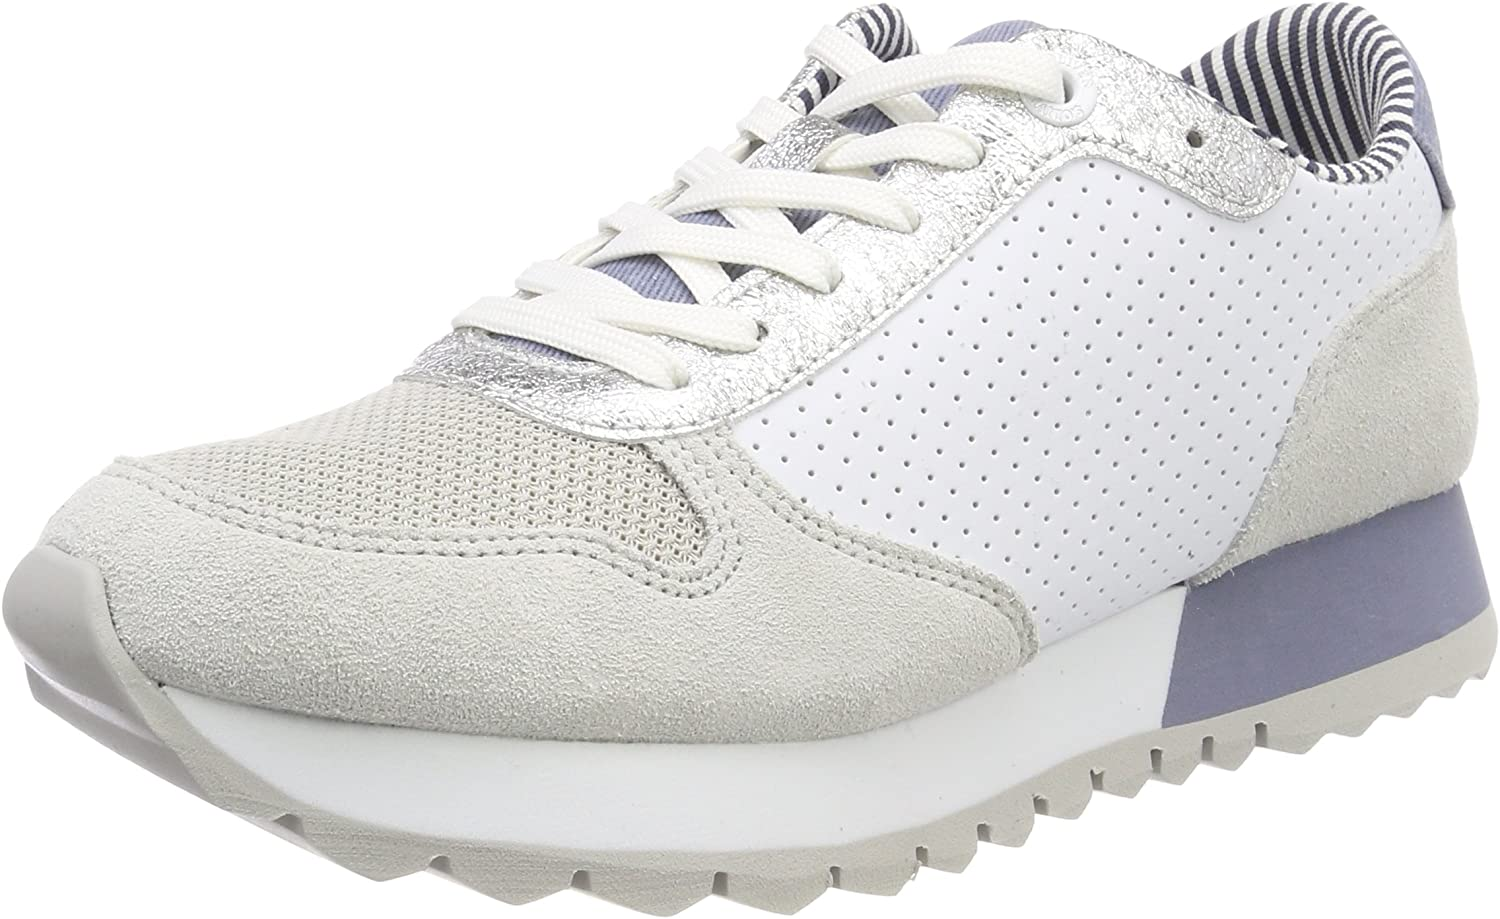 s.Oliver Women's Sneakers Rare Limited price Low-Top